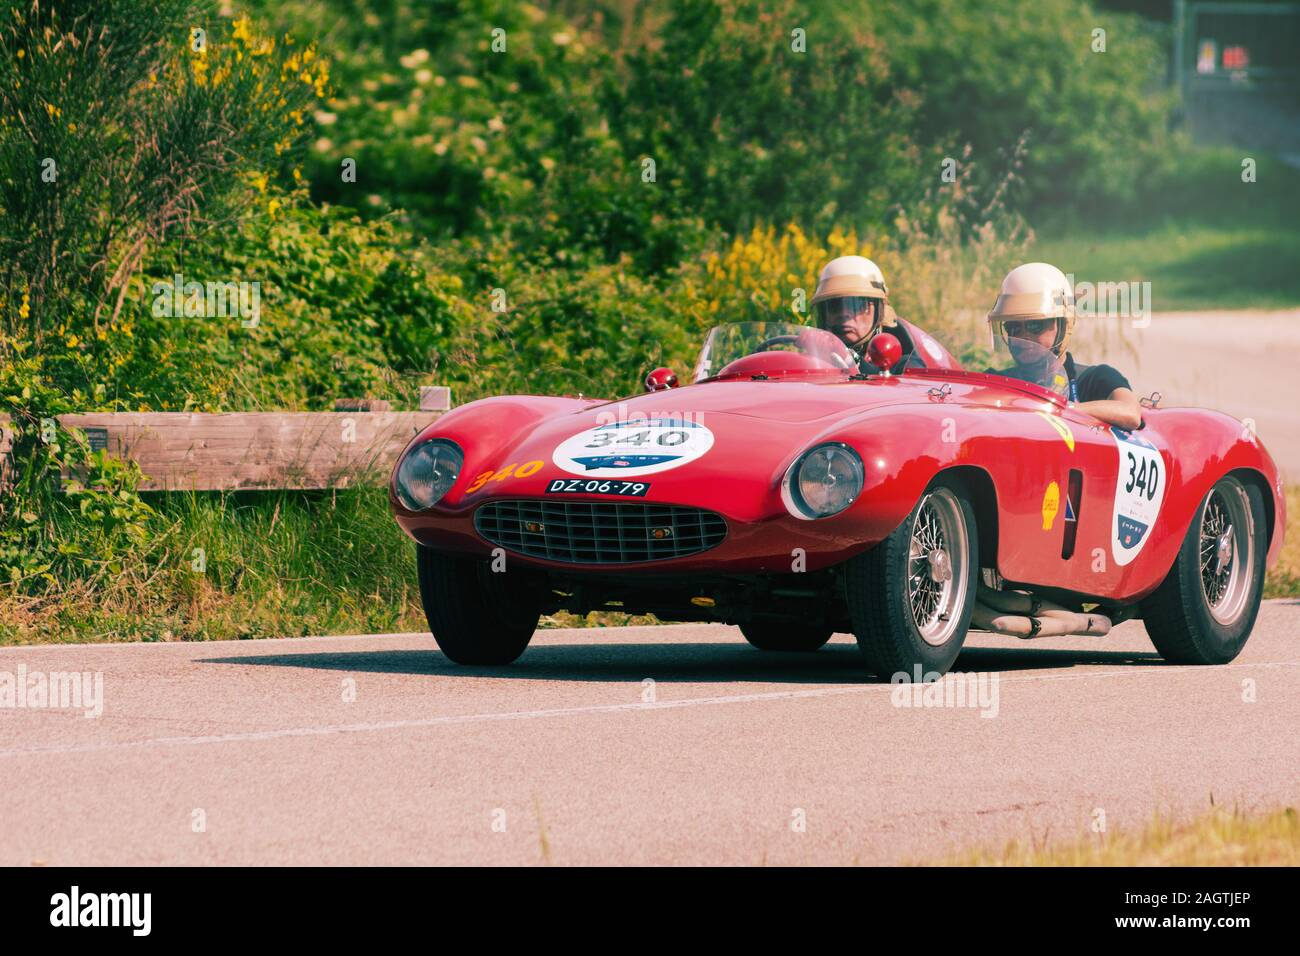 Pesaro Colle San Bartolo Italy May 17 2018 Ferrari 750 Monza Spider Scaglietti 1954 On An Old Racing Car In Rally Mille Miglia 2018 The Famous Stock Photo Alamy